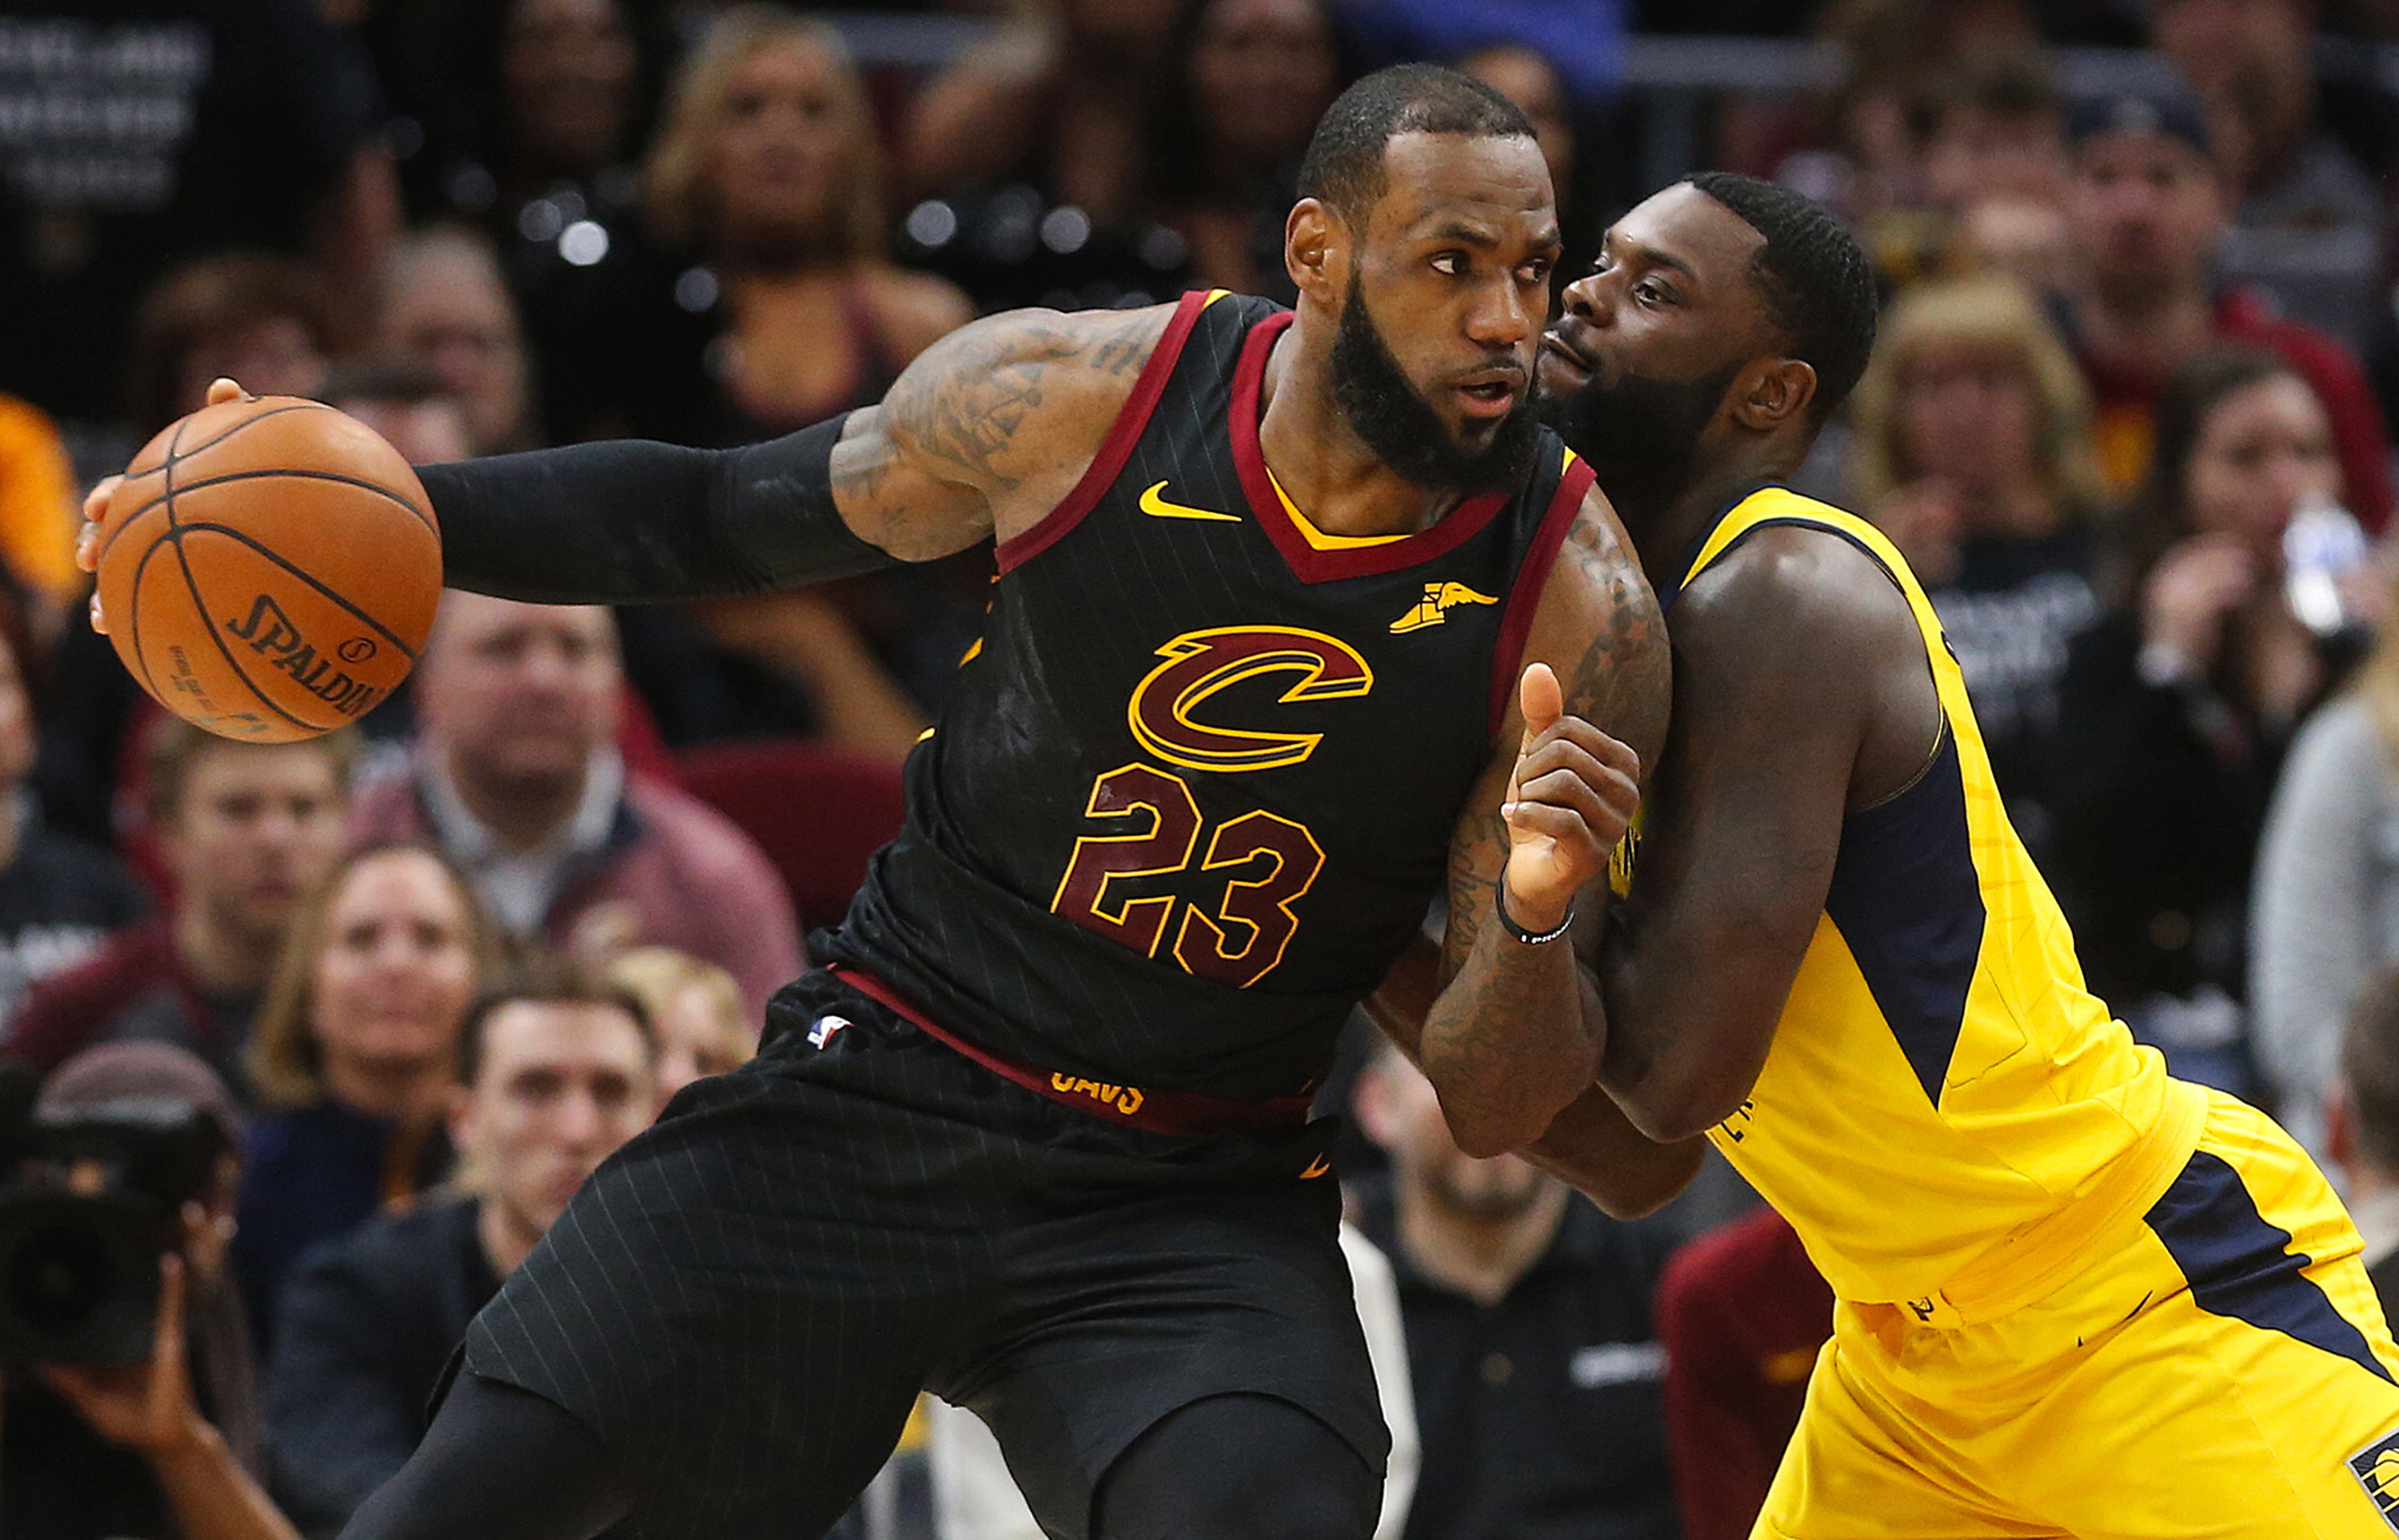 April 29, 2018 - Cleveland, OH, USA - Cleveland Cavaliers forward LeBron James drives the ball against Indiana Pacers Lance Stephenson in the second quarter of Game 7 of the Eastern Conference First Round series on Sunday, April 29, 2018 at Quicken Loans Arena in Cleveland, Ohio. The Cavs won the game, 105-101. (Credit Image: © Leah Klafczynski/TNS via ZUMA Wire)